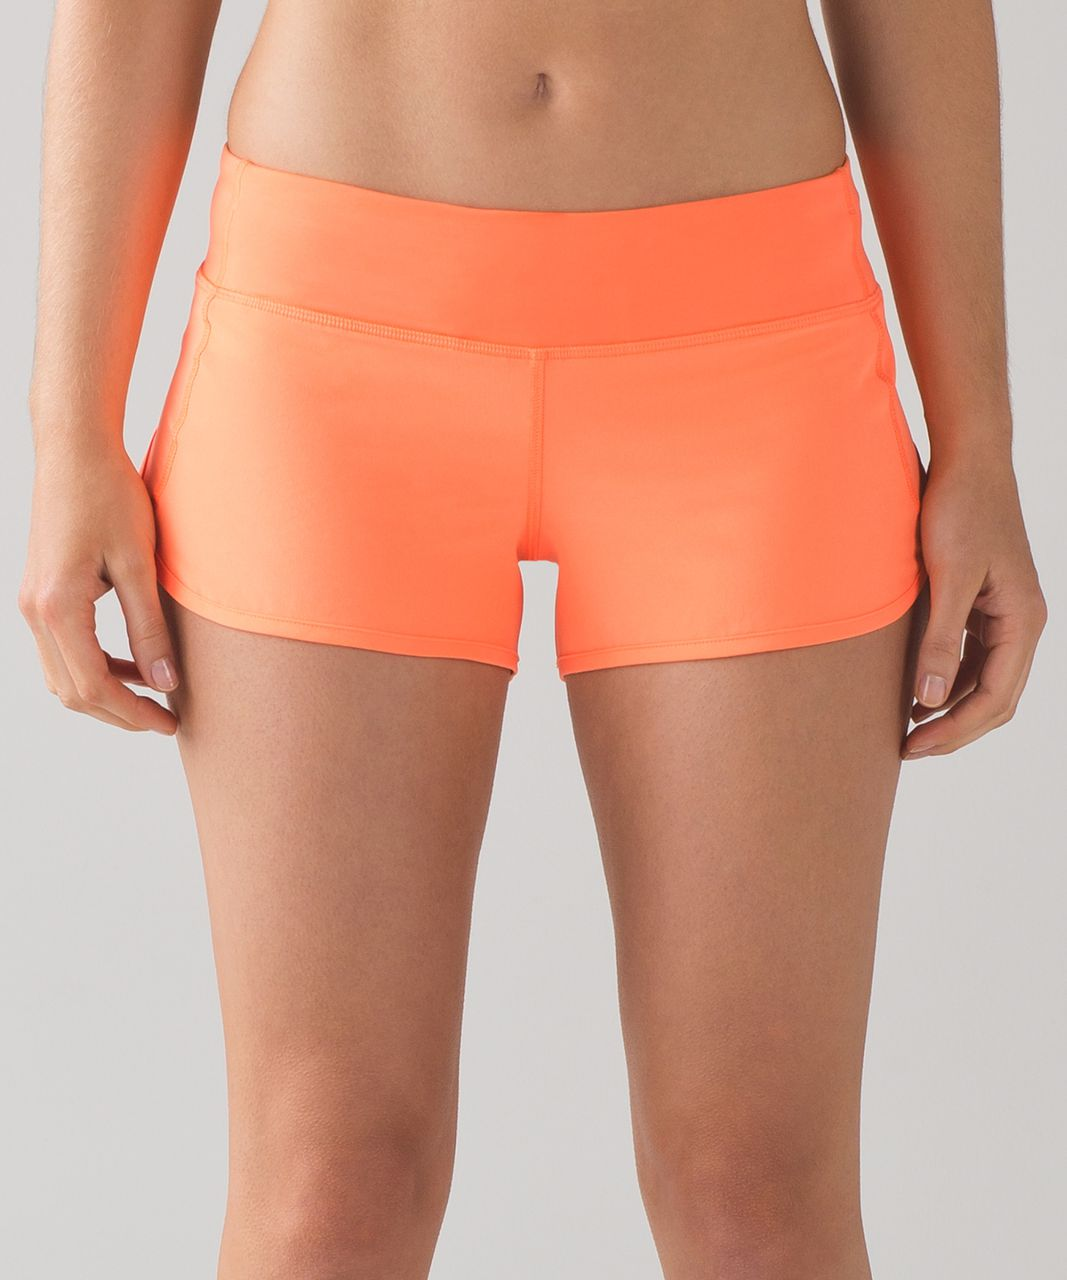 "Lululemon Speed Short (4-way Stretch 2 1/2"") - Filtered Orange"